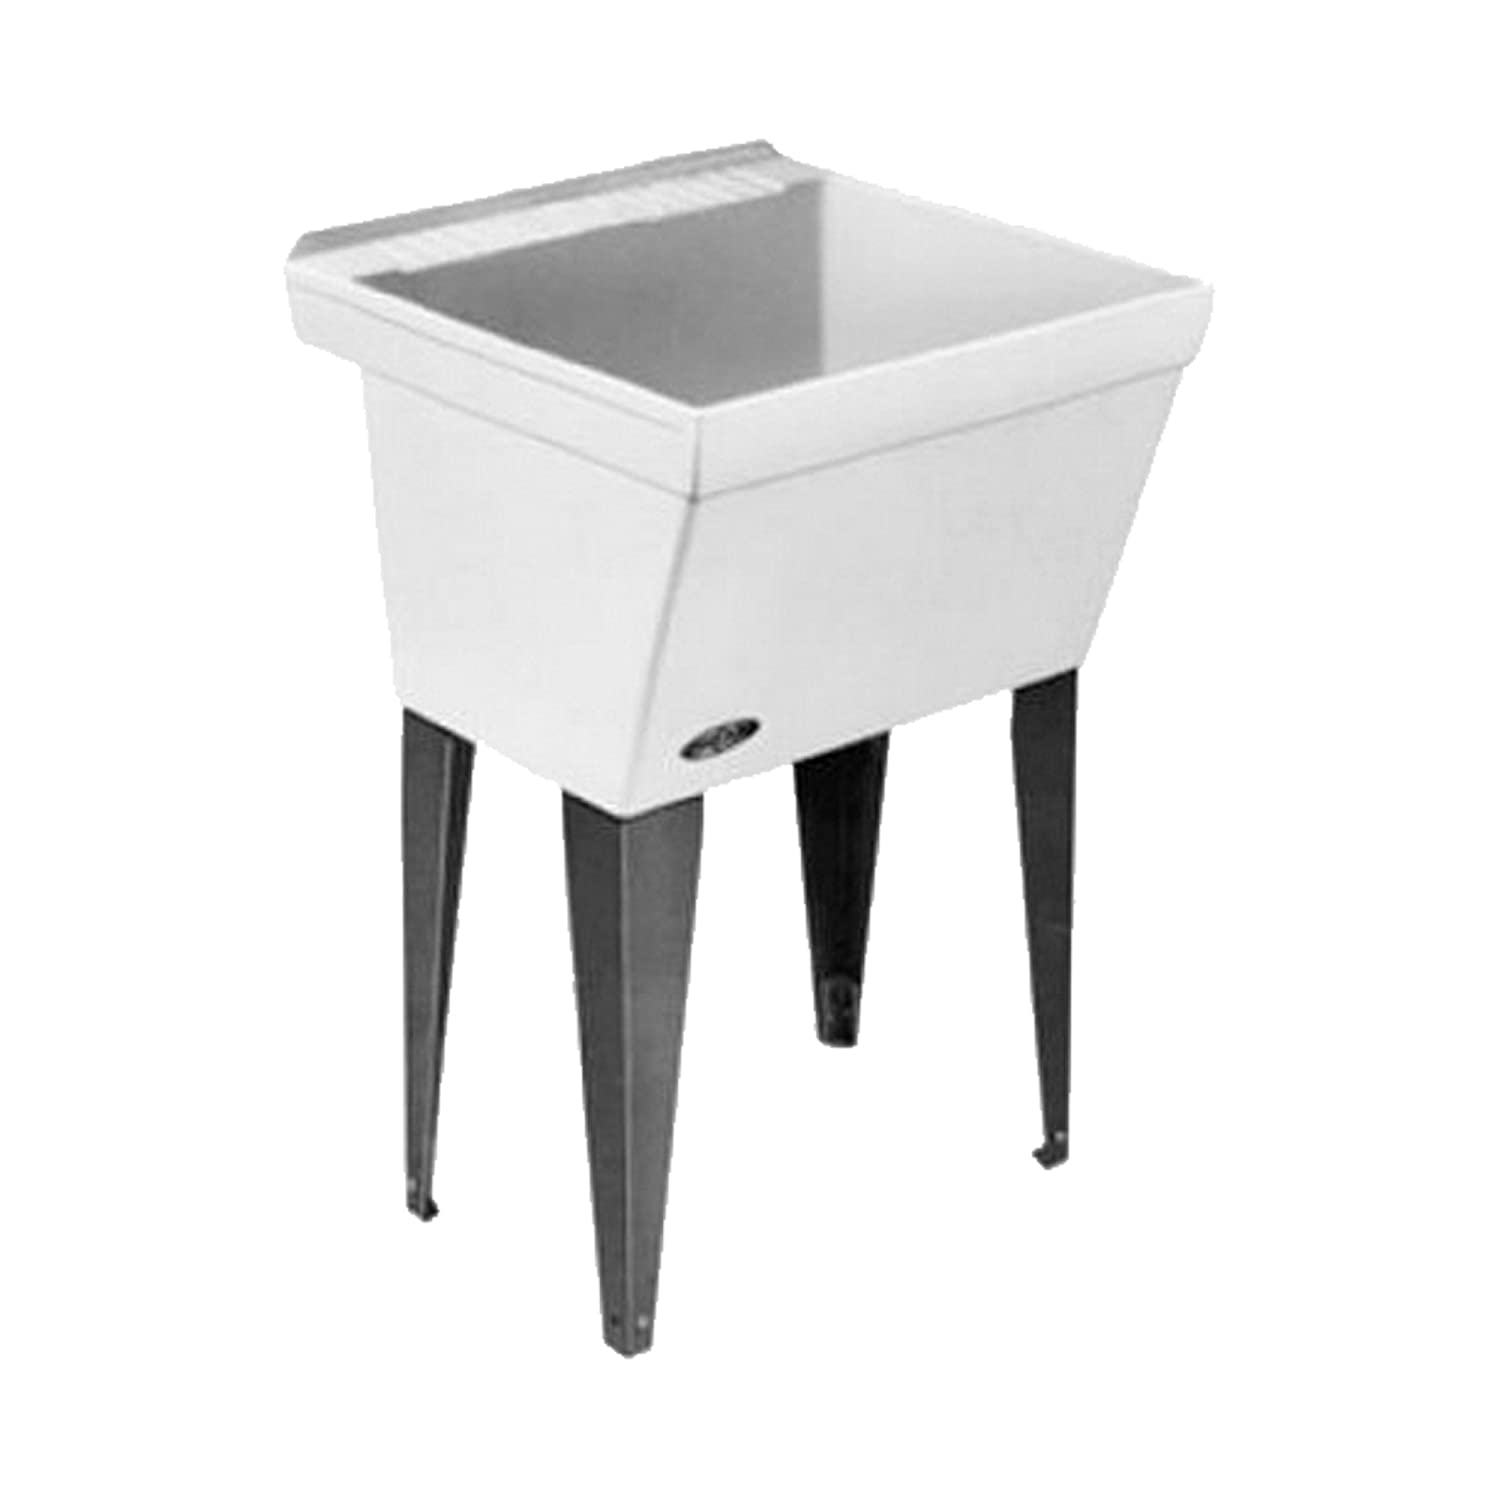 Plastic Utility Sink with Legs